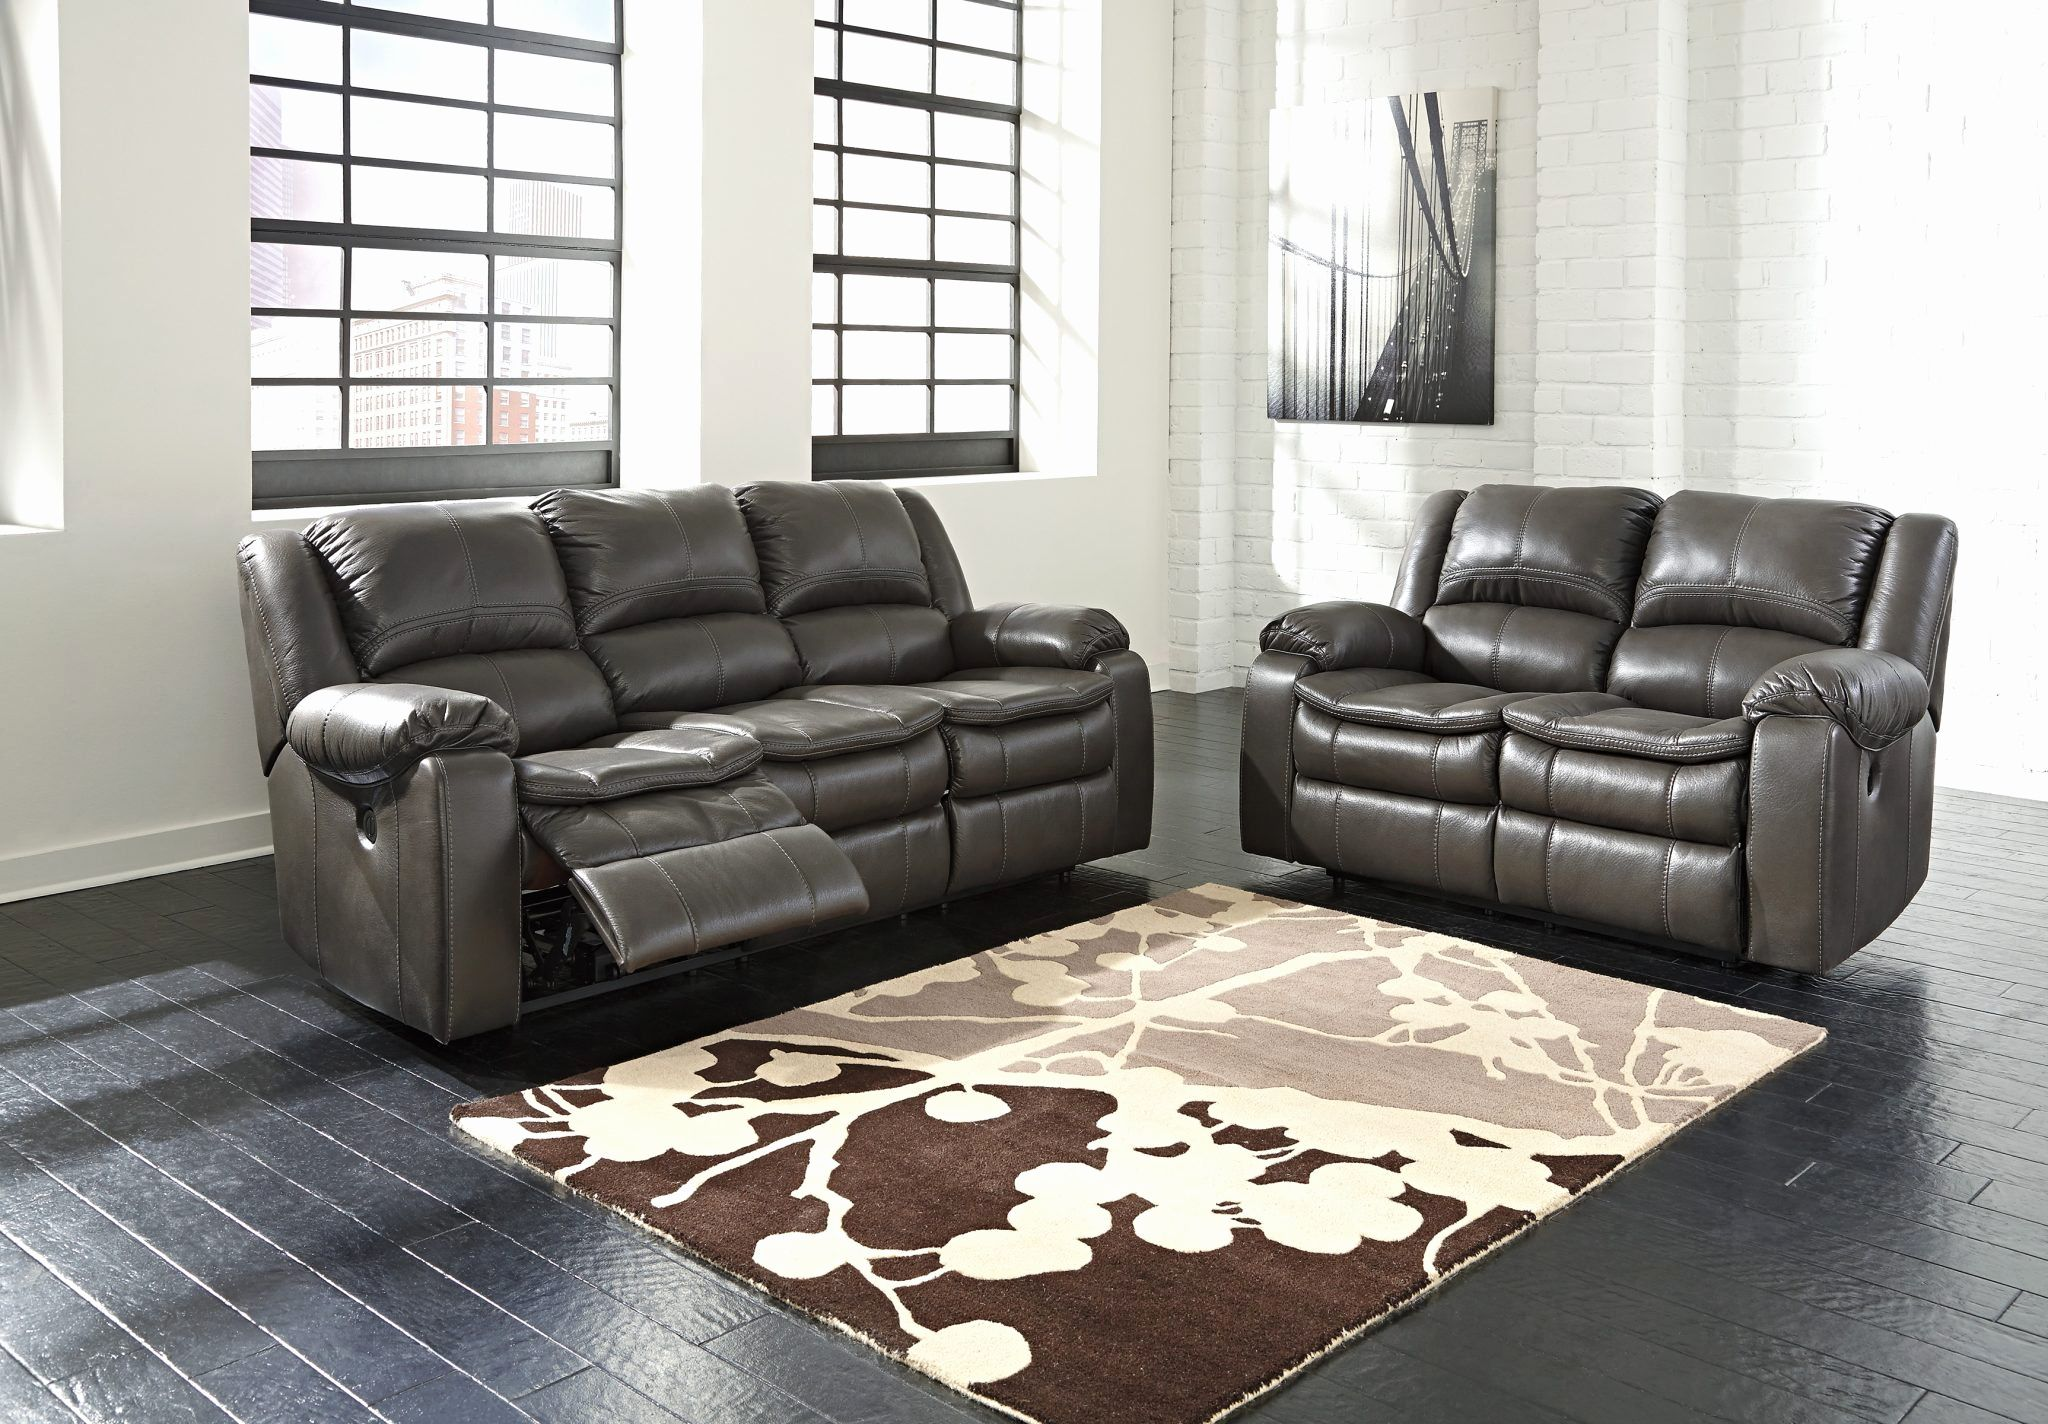 Awesome ashley Furniture Microfiber sofa Ashley Furniture Microfiber